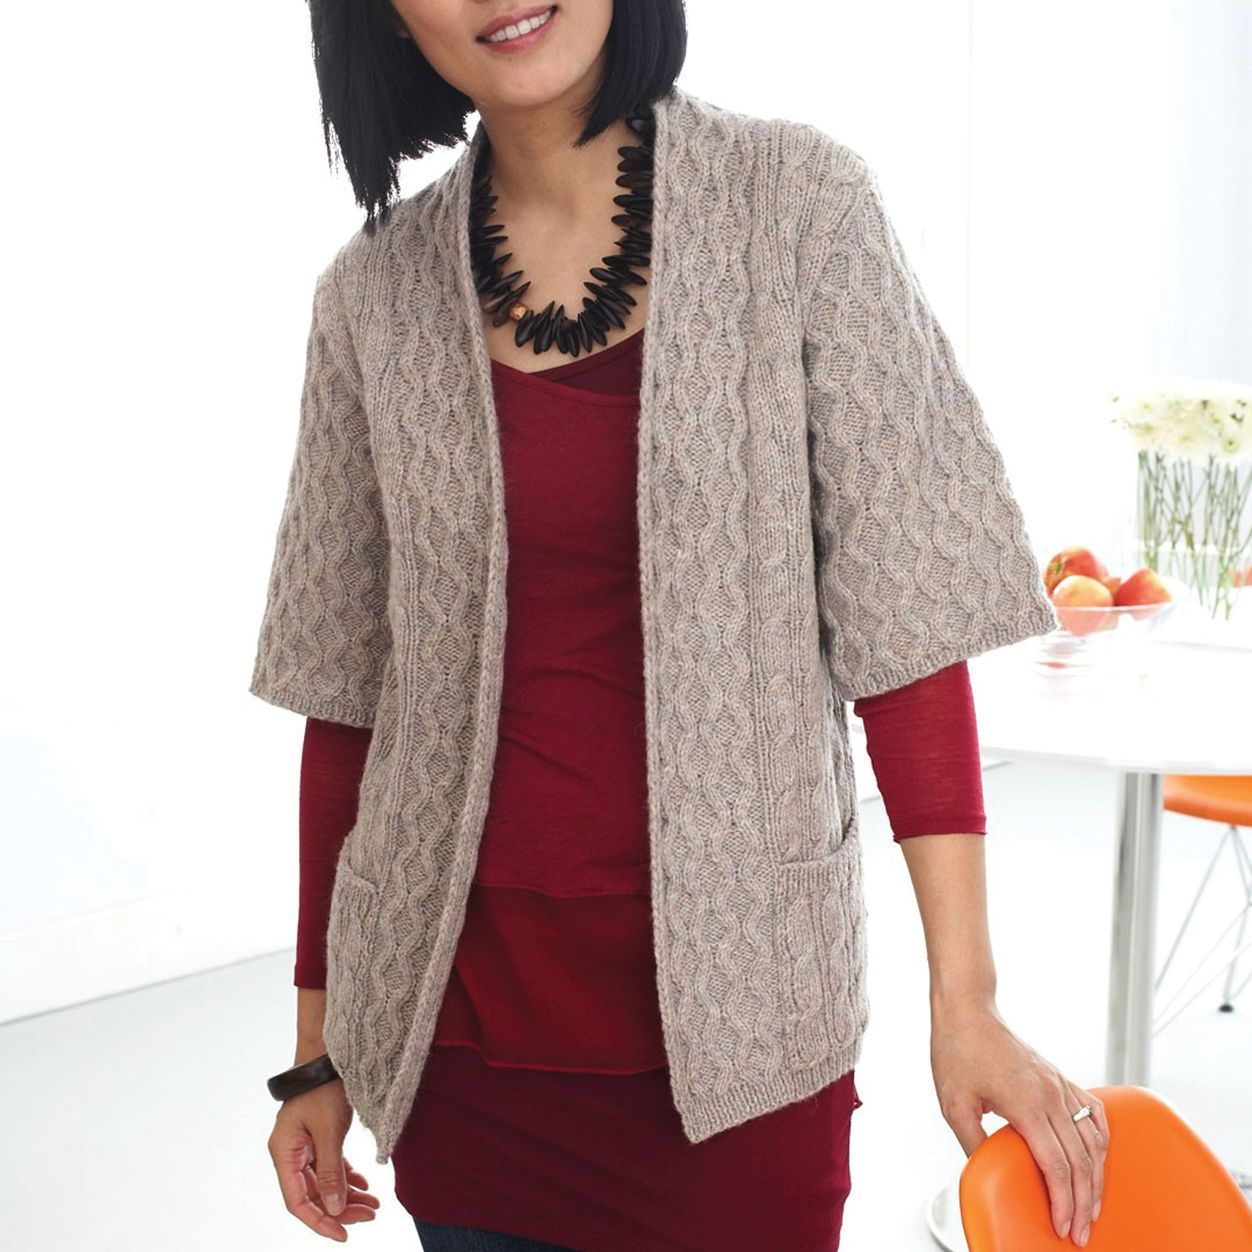 Patons Long Cardigan with Pockets, XS | Crochet cardigan ...